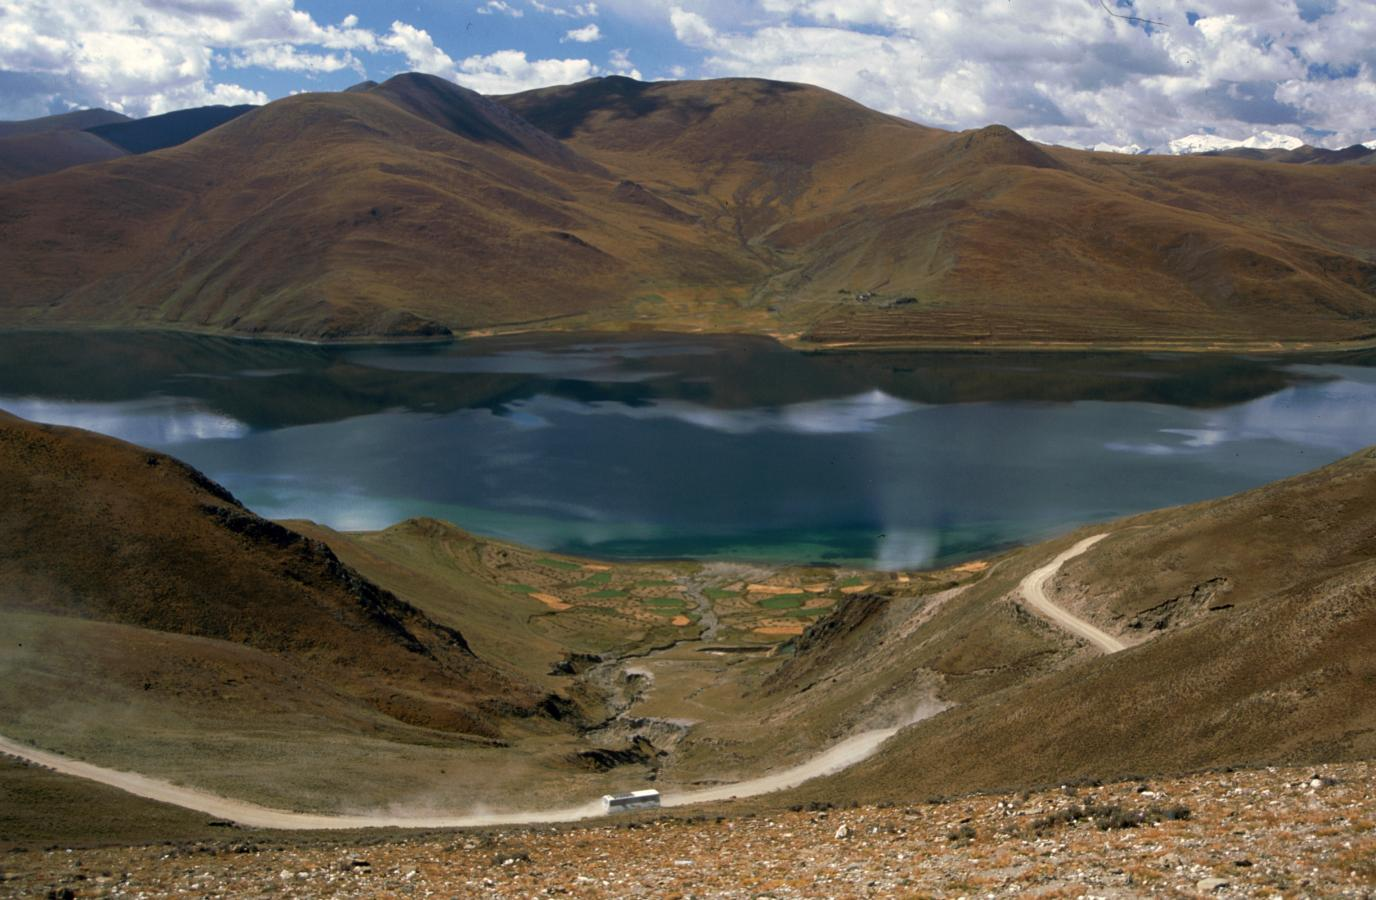 yamdrok-tso-lake-shot-from-gamta-la-pass-tibet-2000